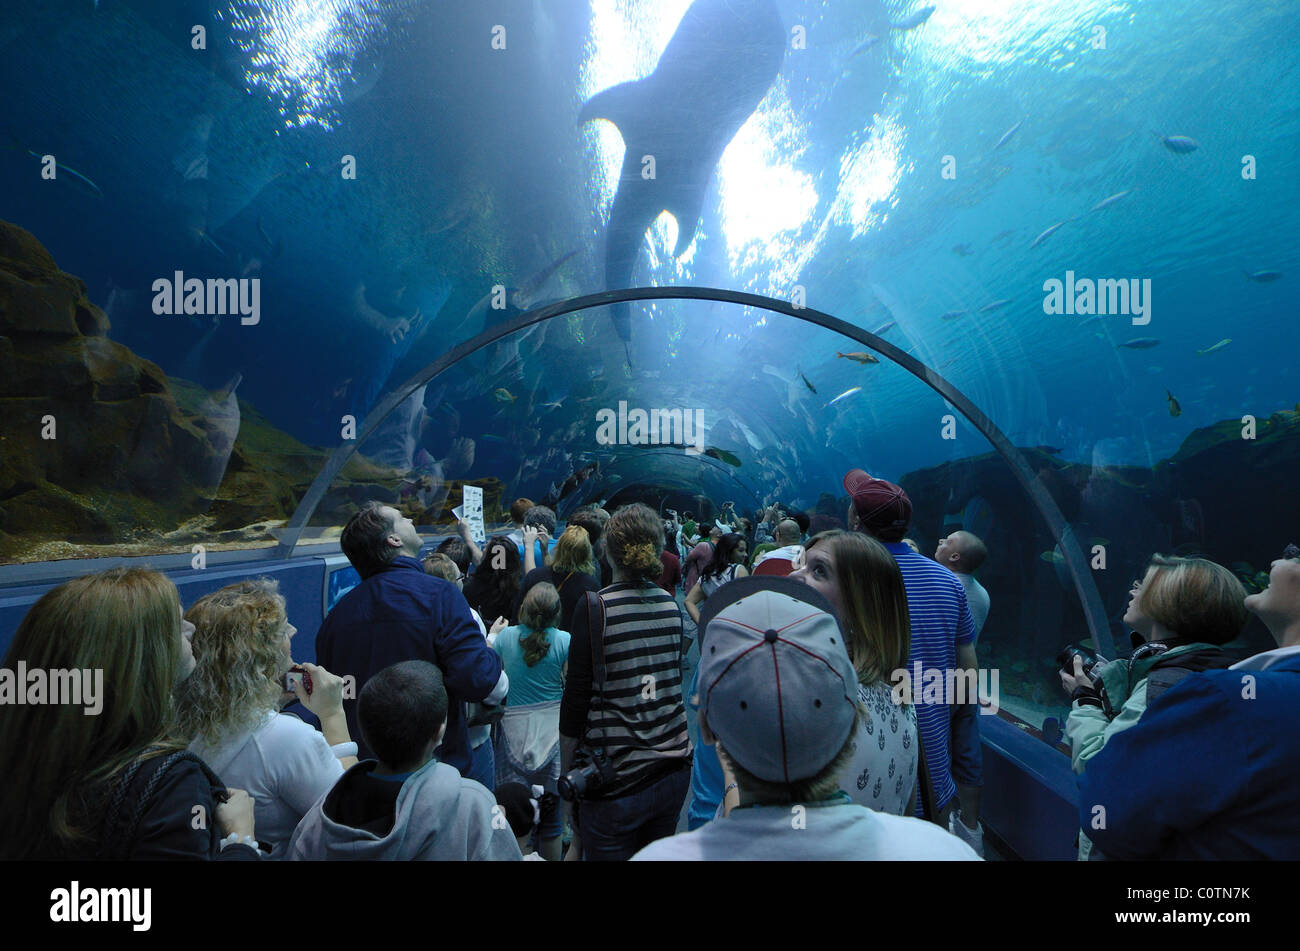 The Georgia Aquarium, the world's largest aquarium, in Atlanta, Georgia. February 20, 2011. - Stock Image